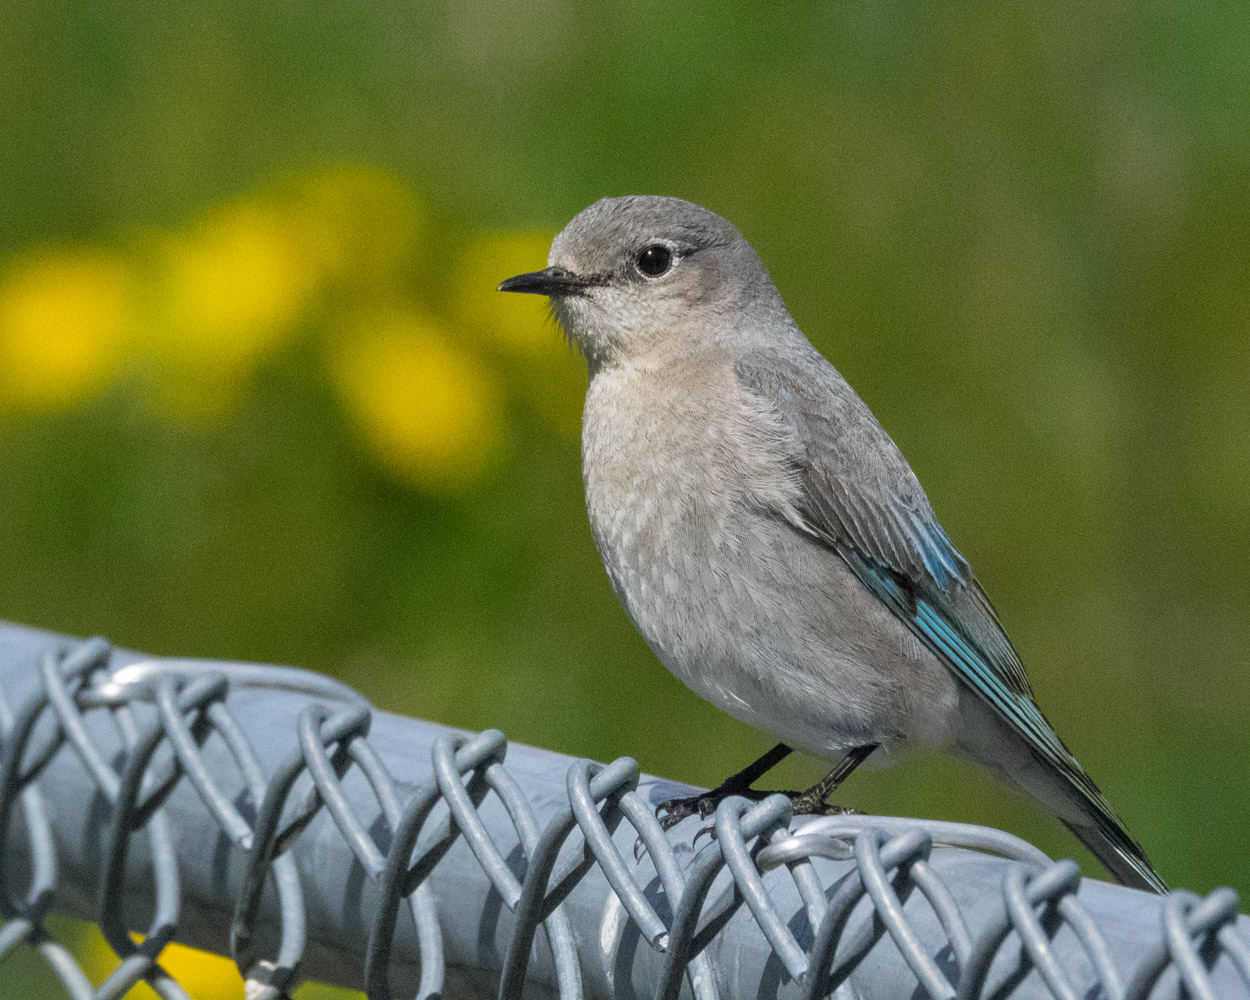 Female Bluebird on Fence